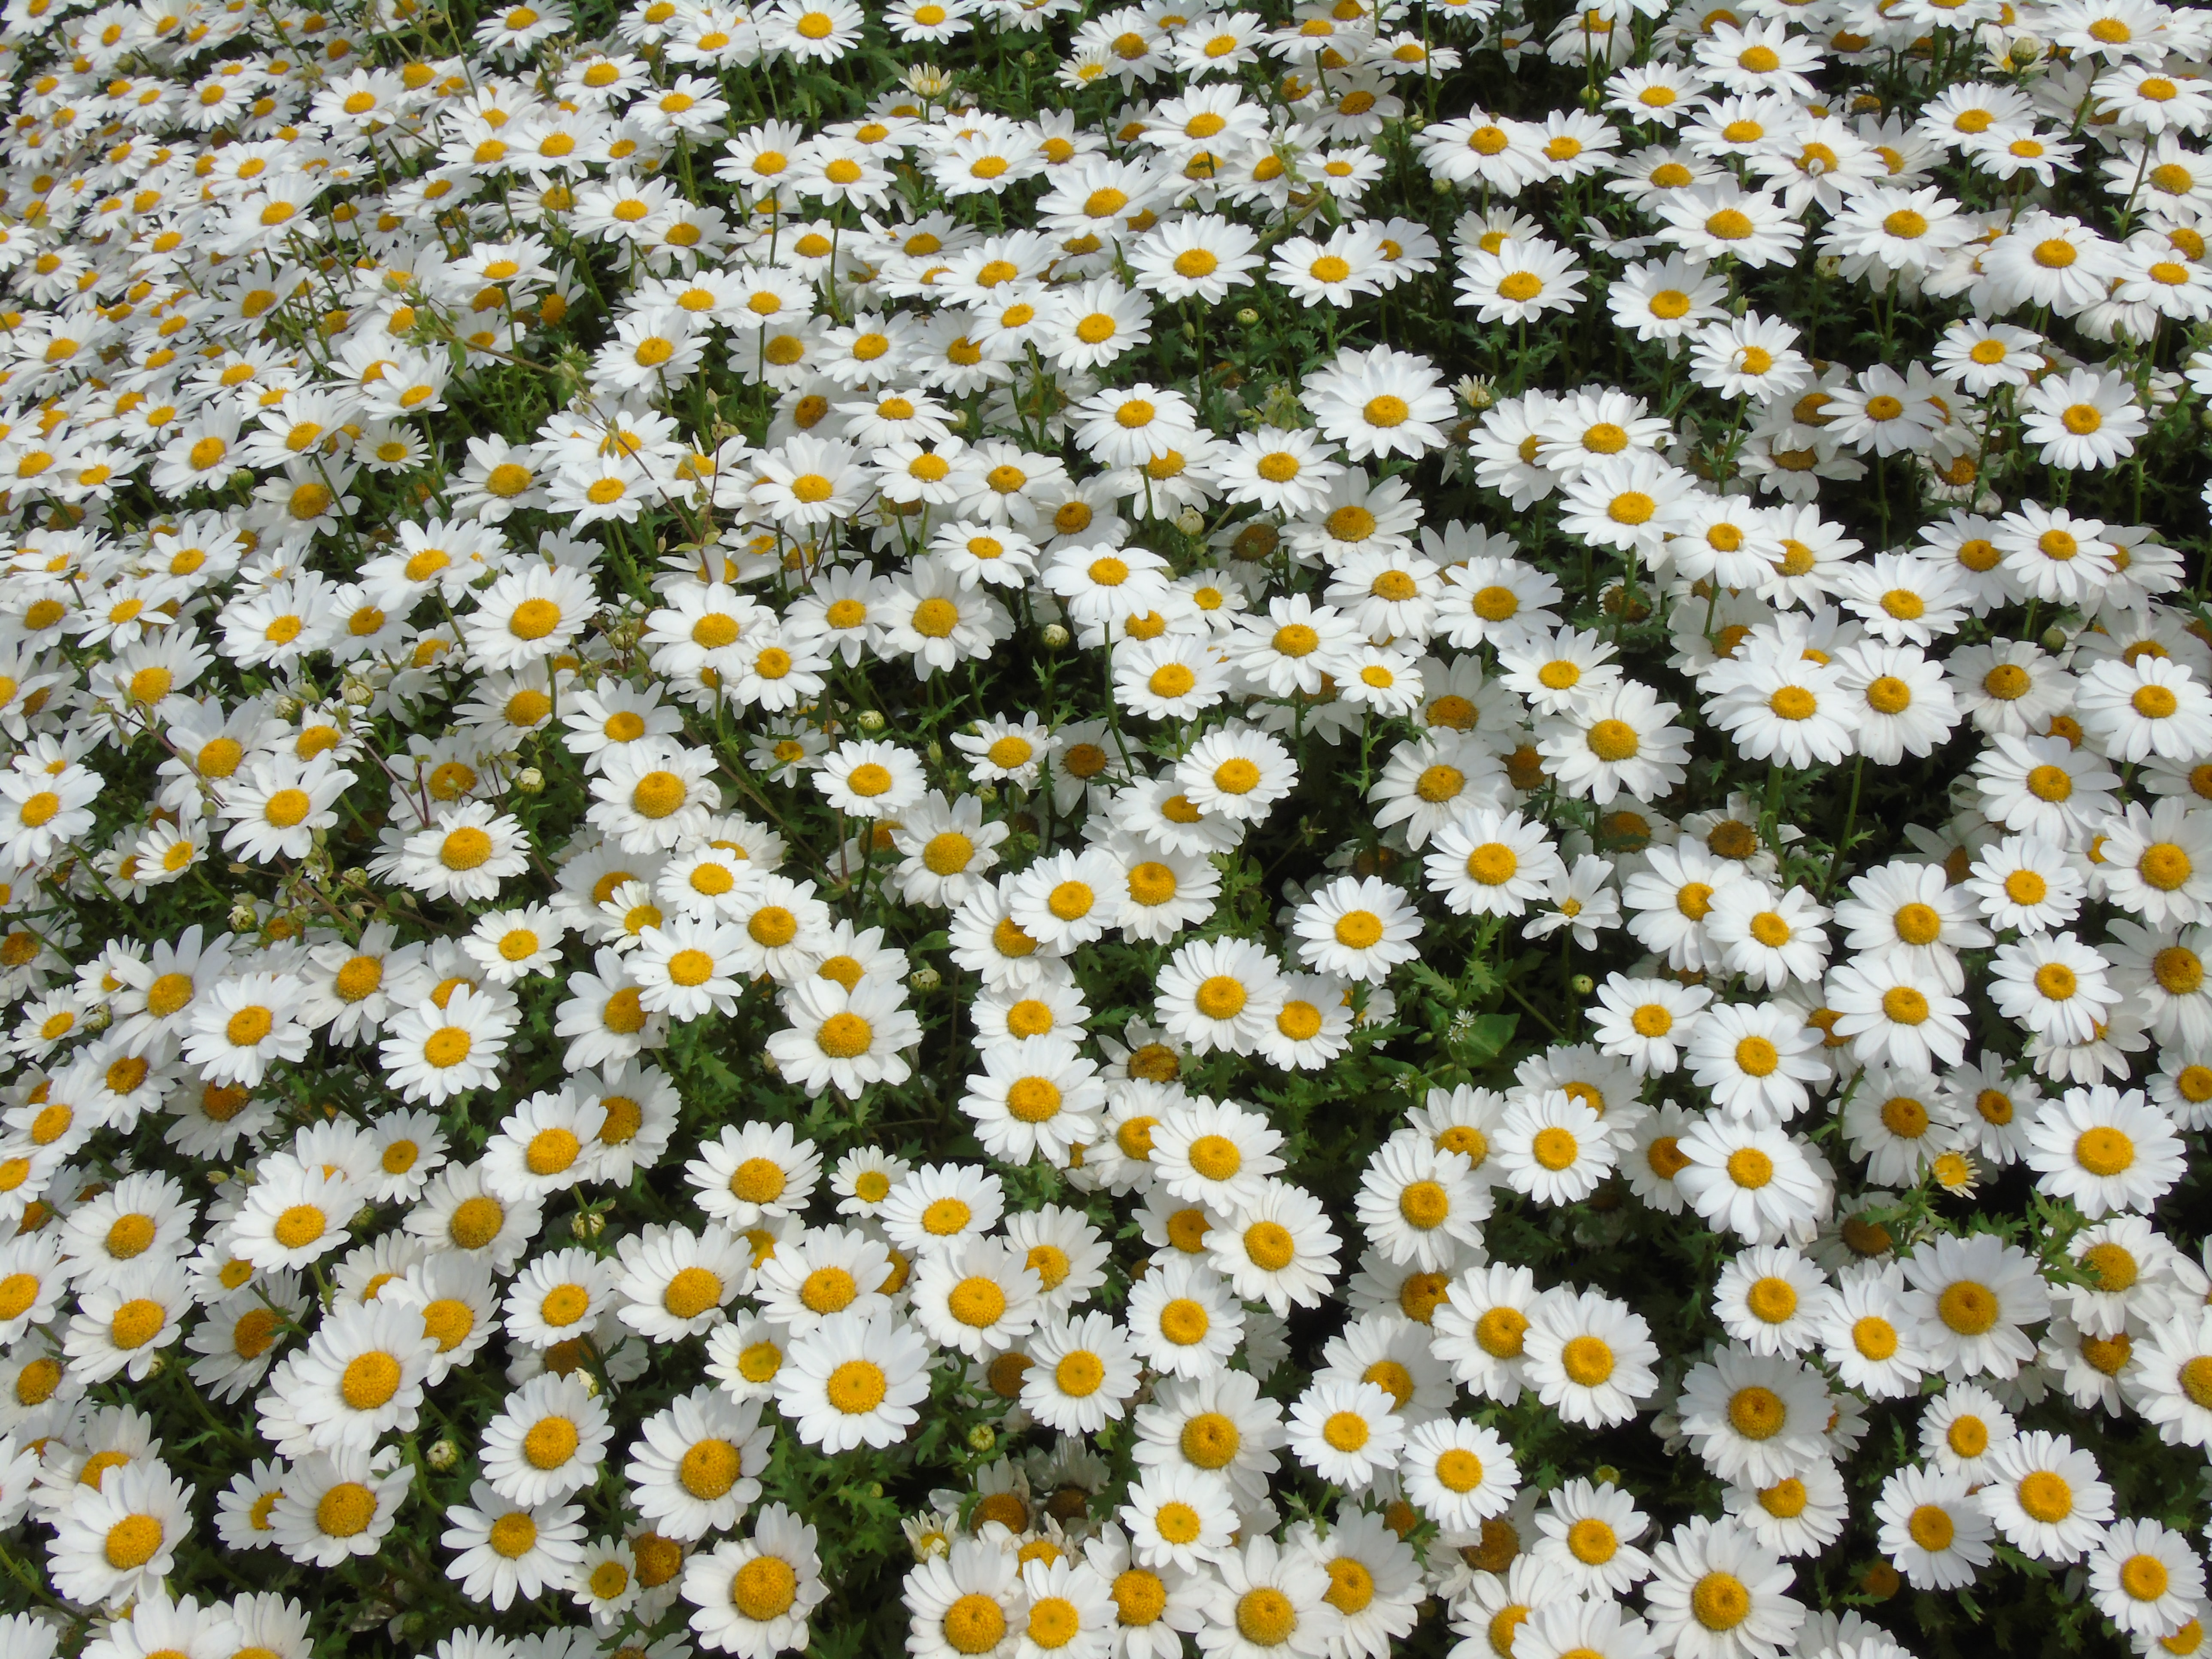 photo of bed of daisy